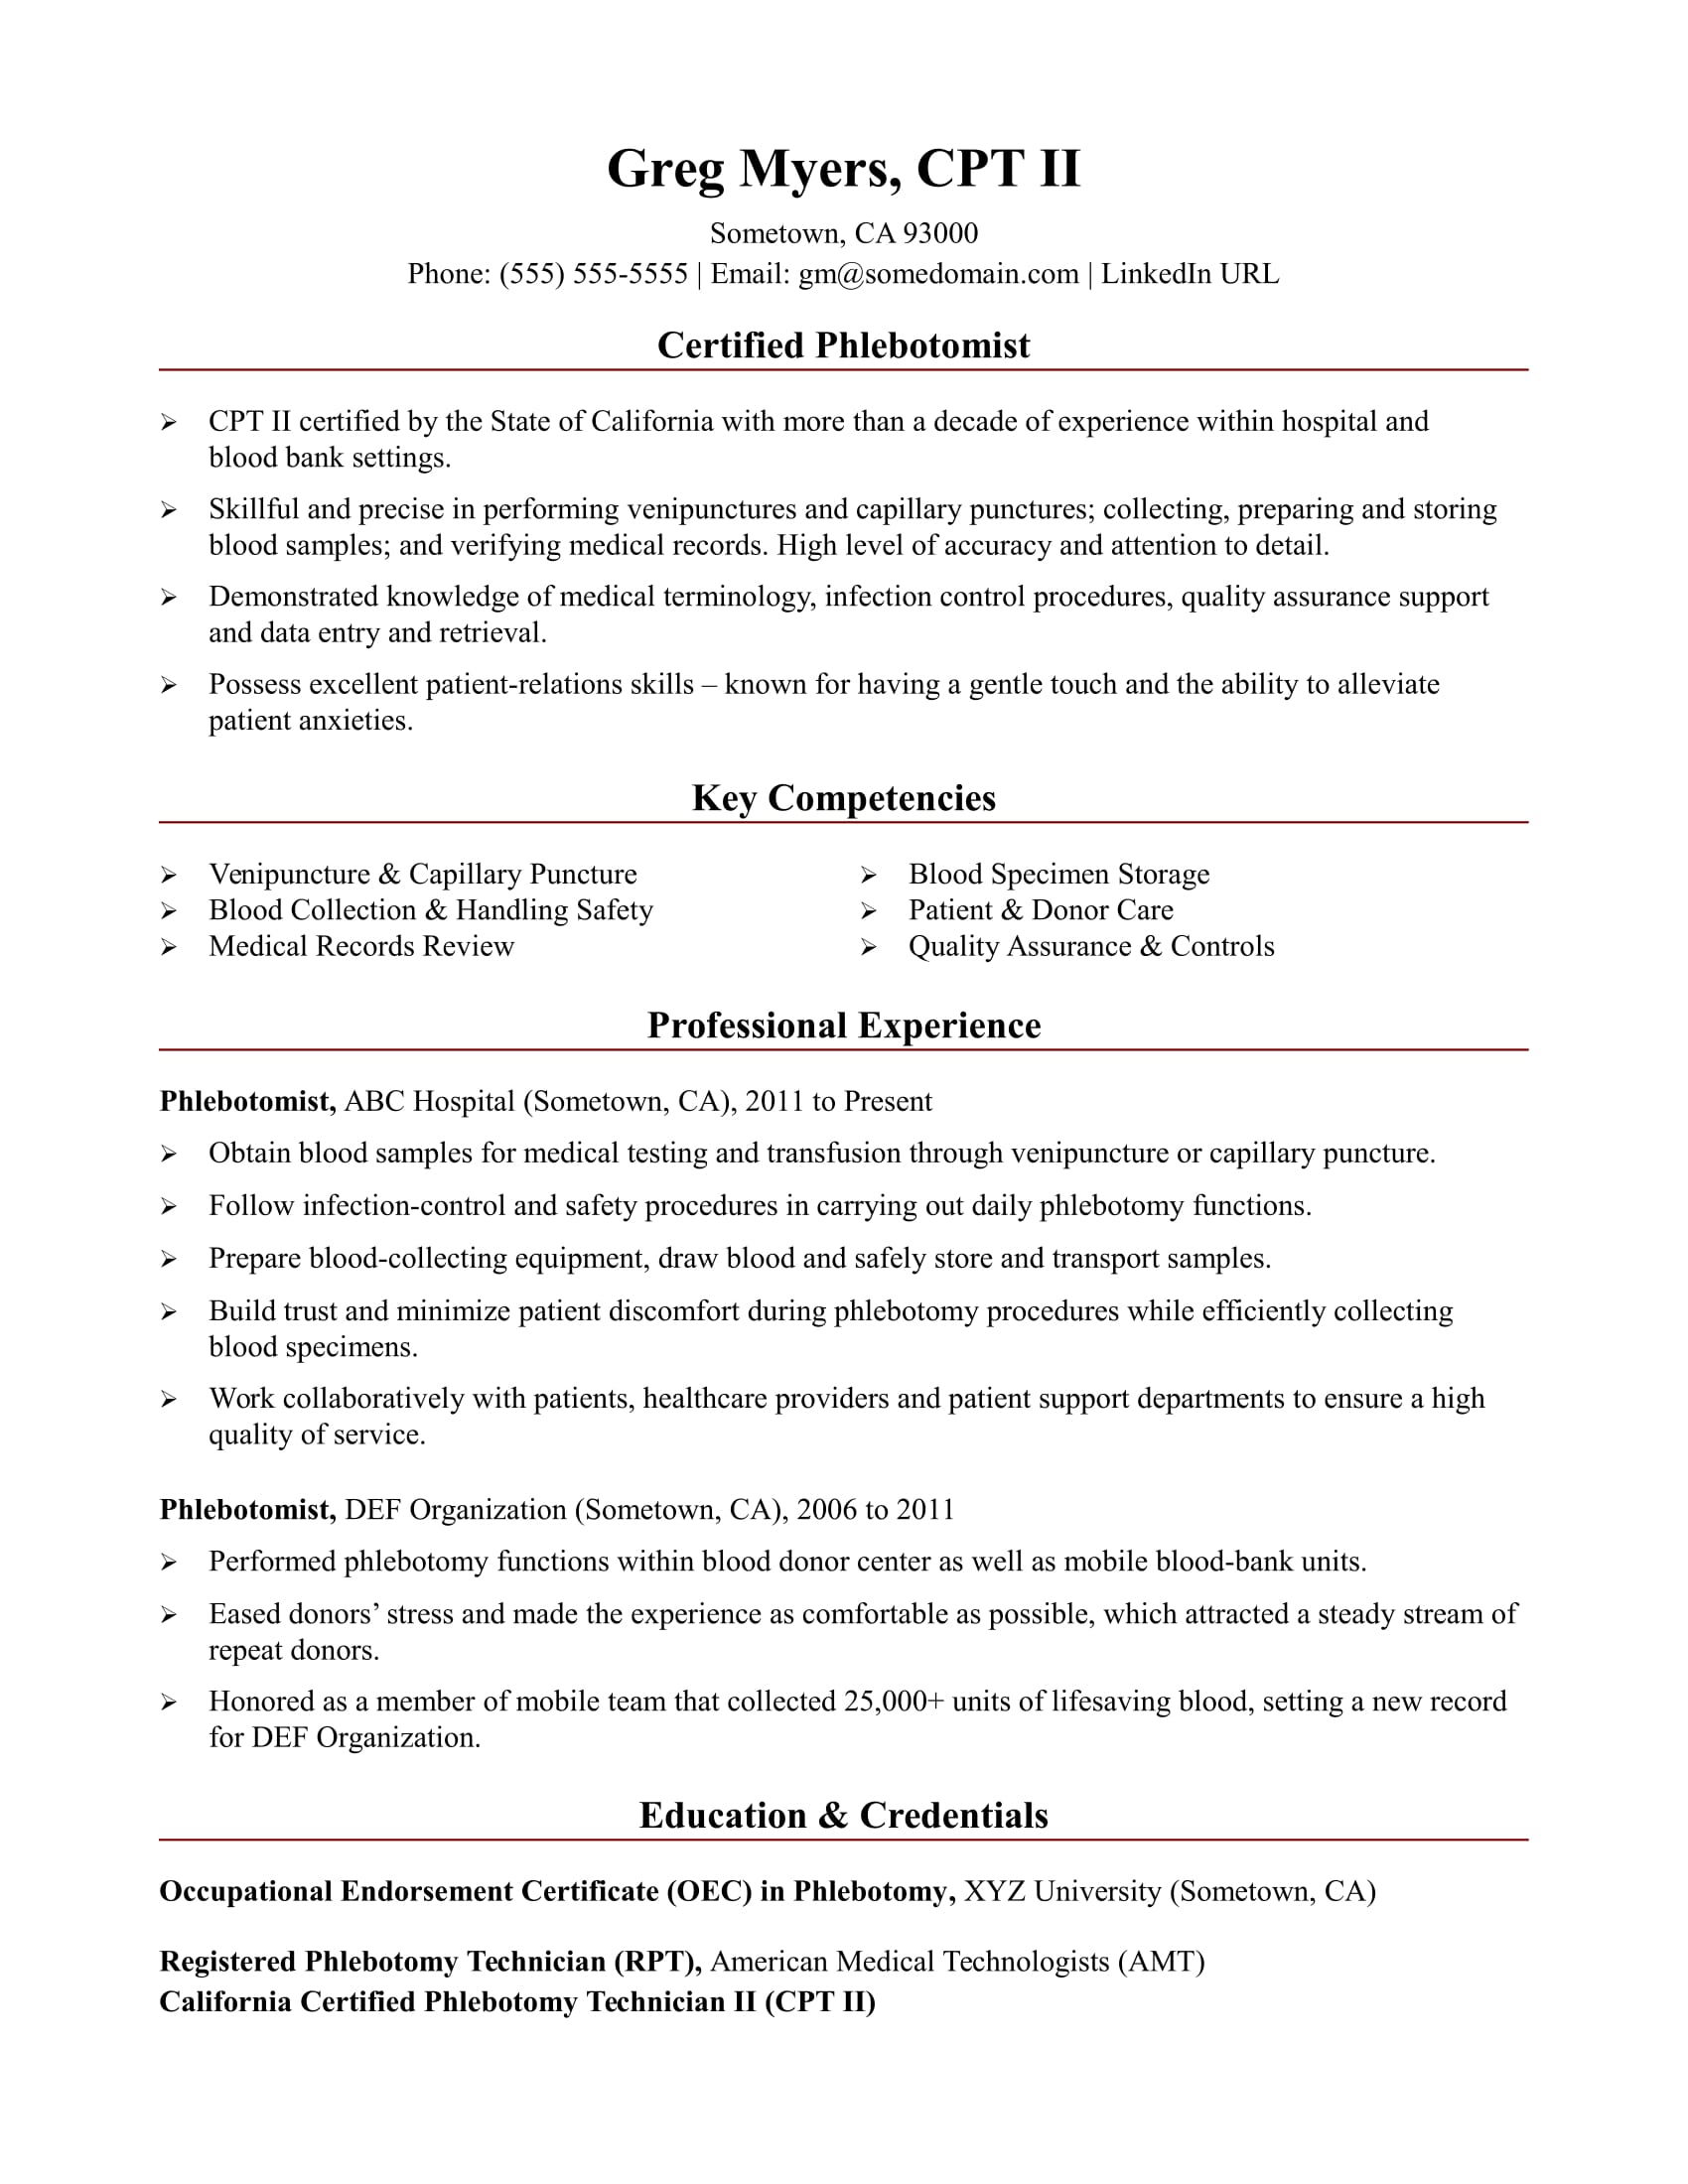 Phlebotomist resume sample monster sample resume for a phlebotomist 1betcityfo Gallery